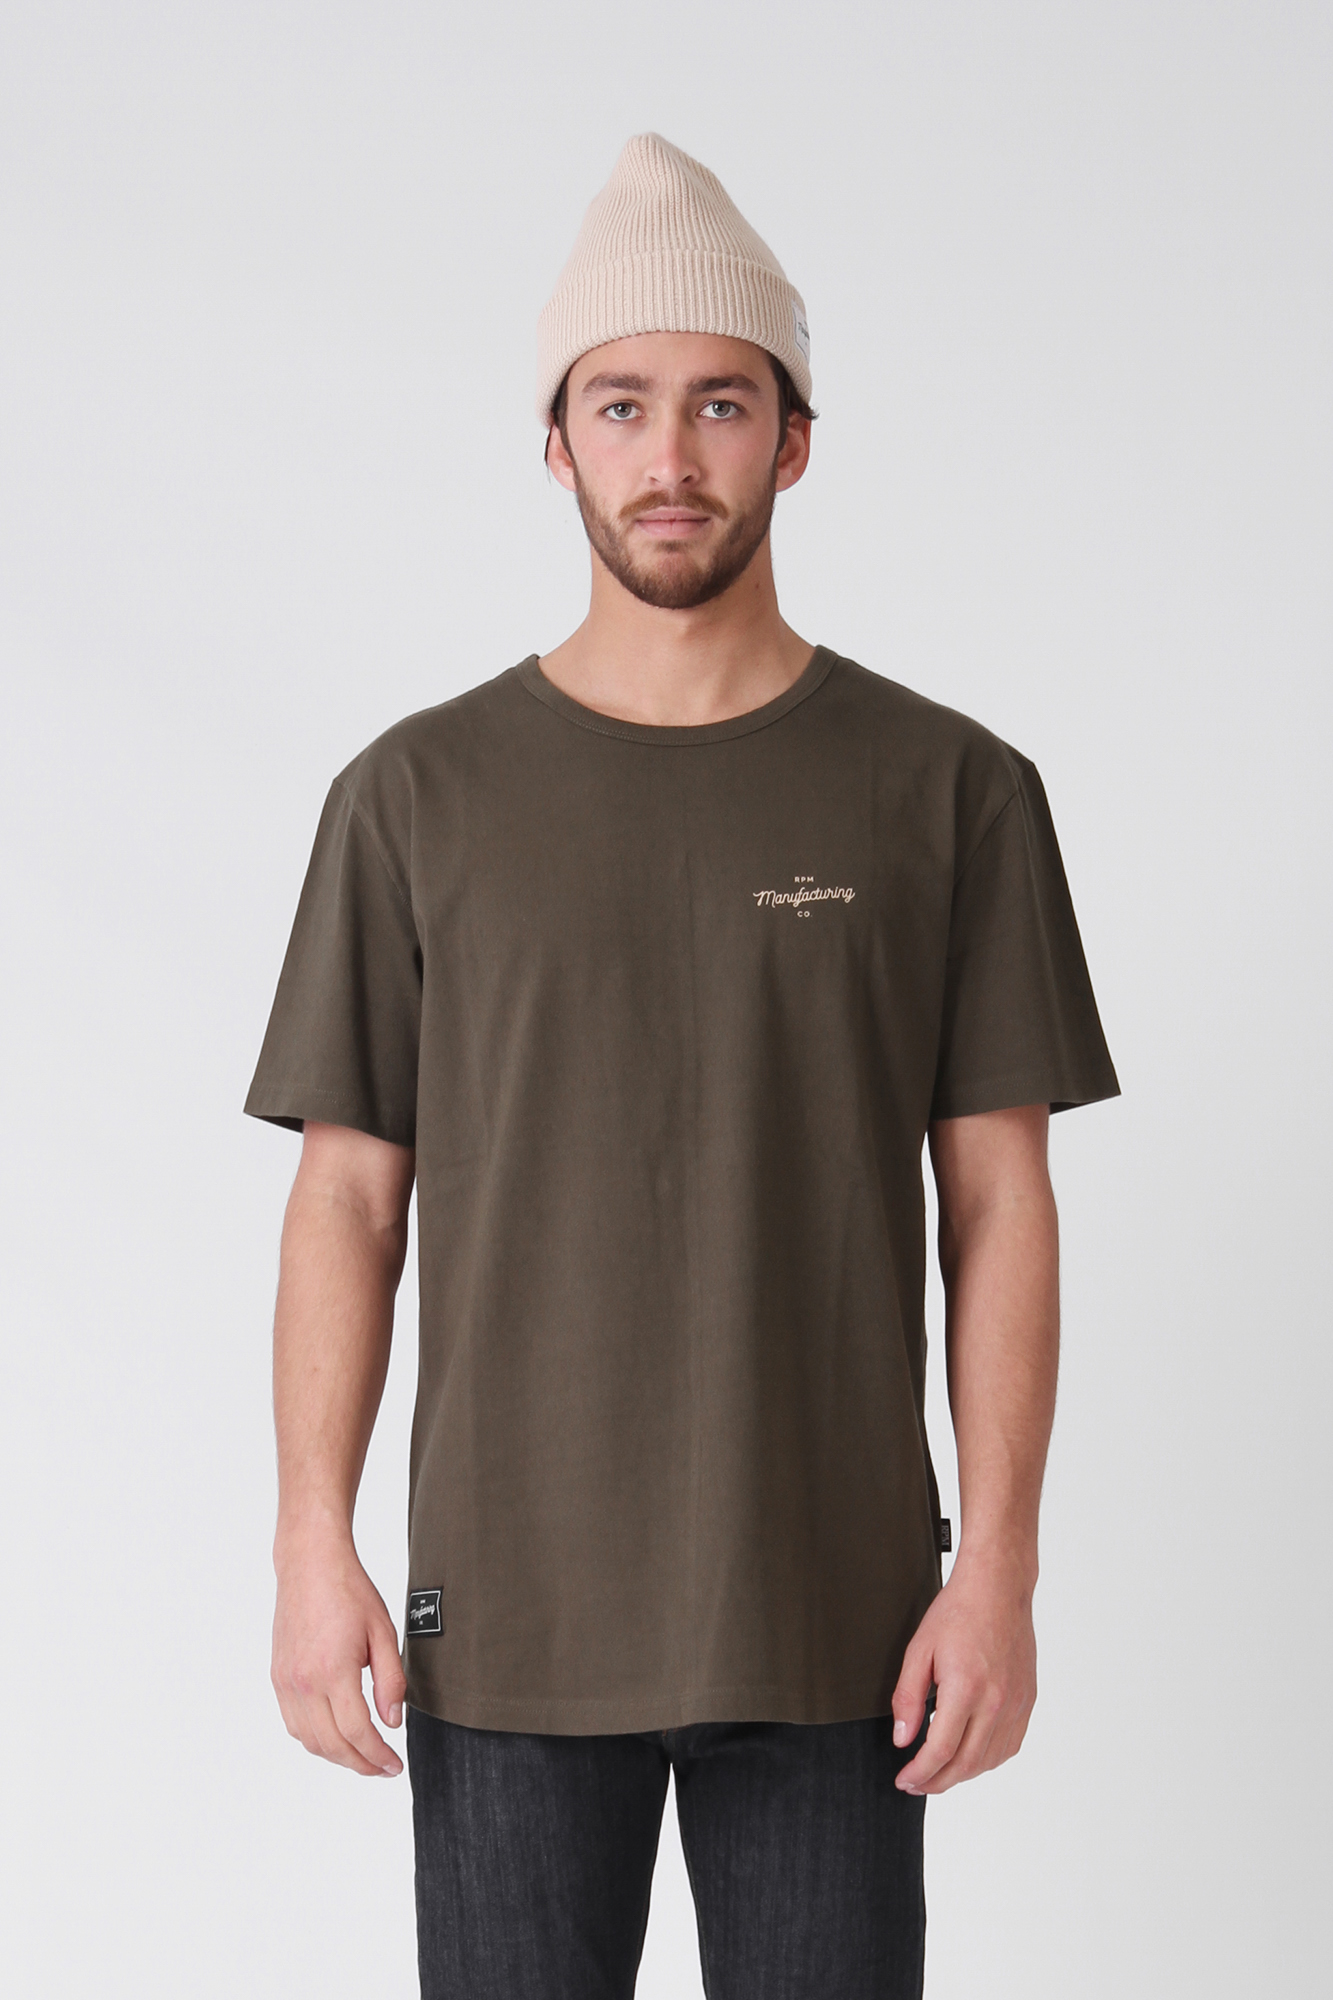 f1c920ee STOCK TEE - Mens -Tops : Urban Streetwear Fashion, Skater & Surf Clothes  Online Auckland NZ - RPM AU18